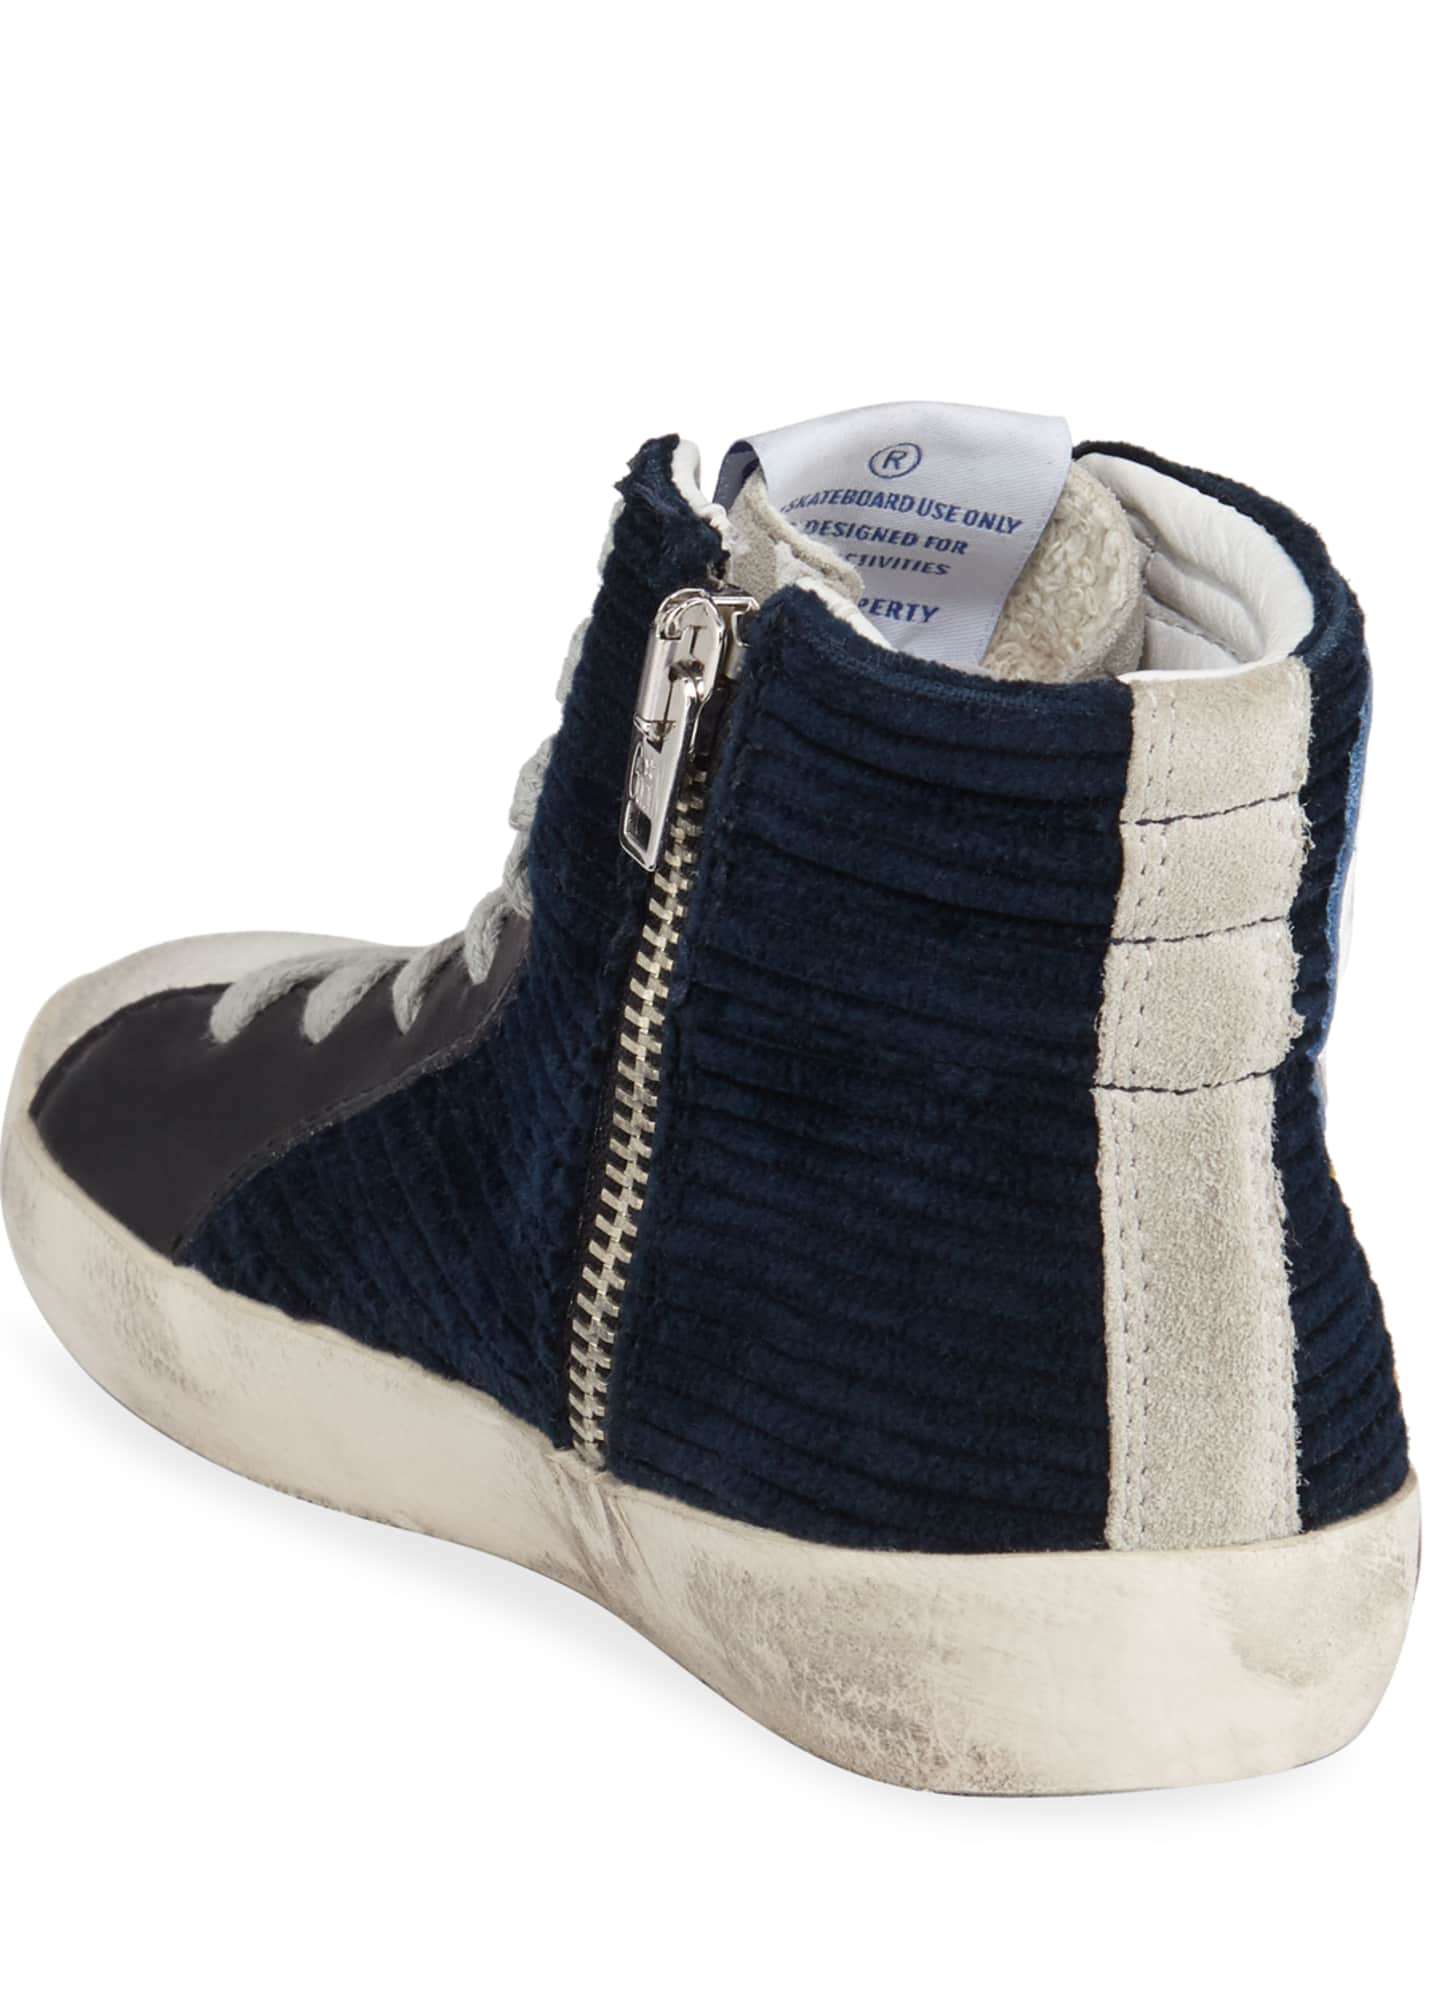 Image 4 of 4: Boy's Slide High-Top Corduroy Sneakers, Toddler/Kids